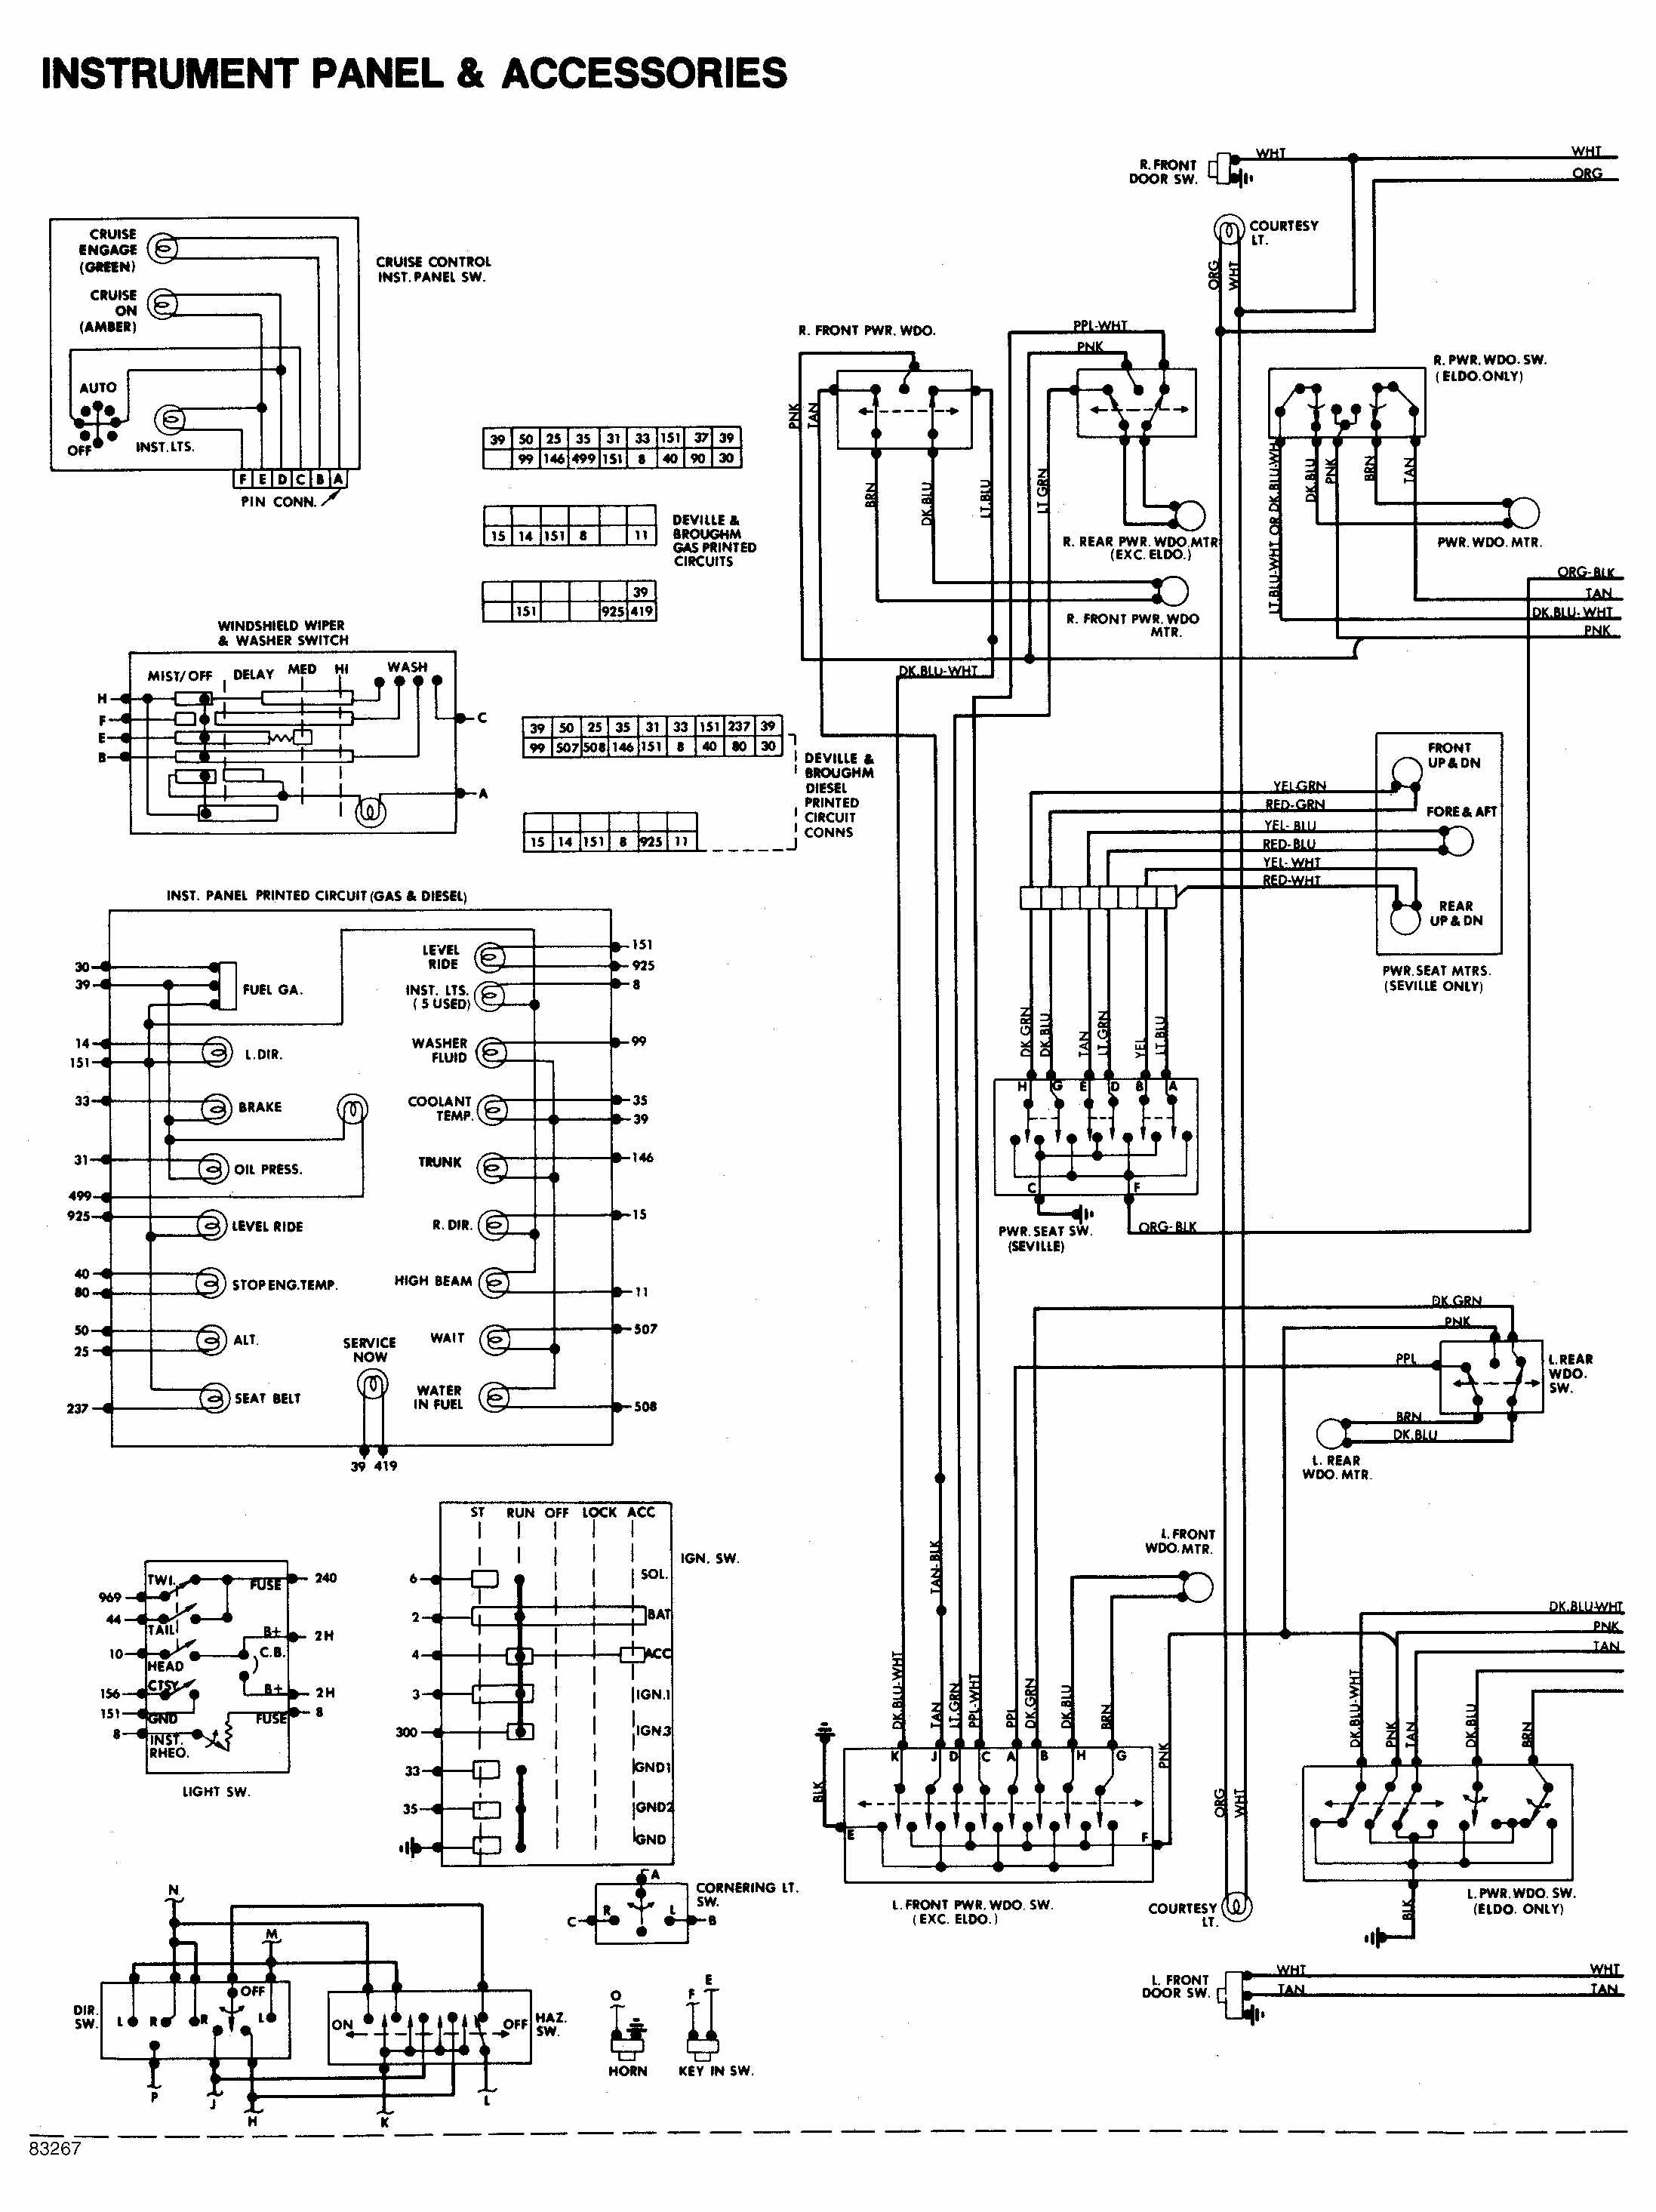 69 Camaro Power Window Wiring Diagram Library Chevy Astro Van For 1984 Cadillac Deville Instrument Panel And Accessories Drawing A